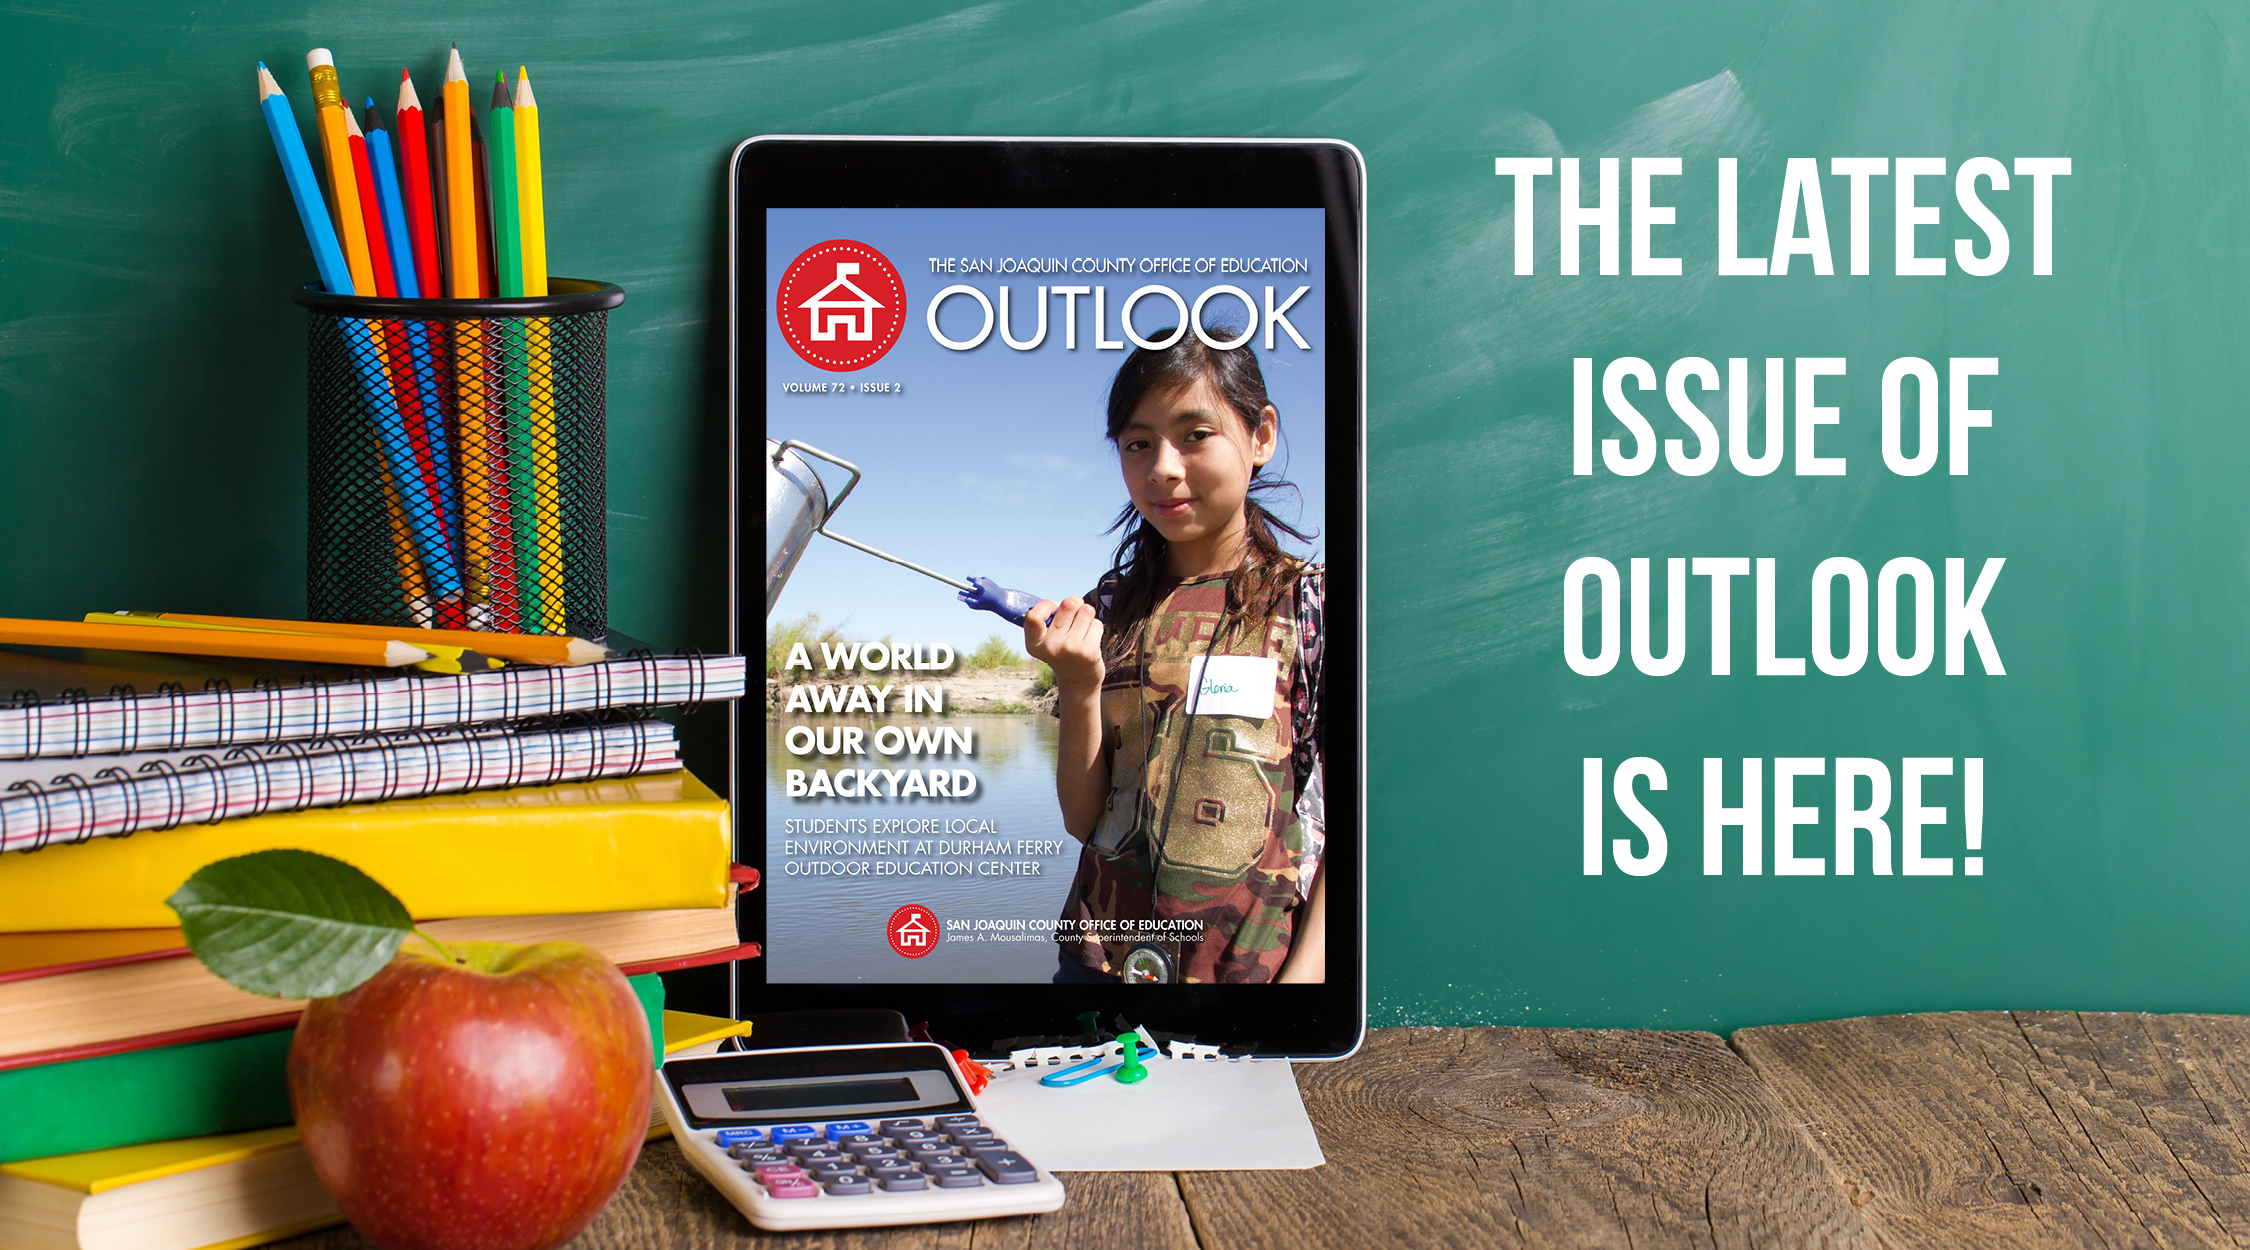 The November Issue of Outlook is Here!